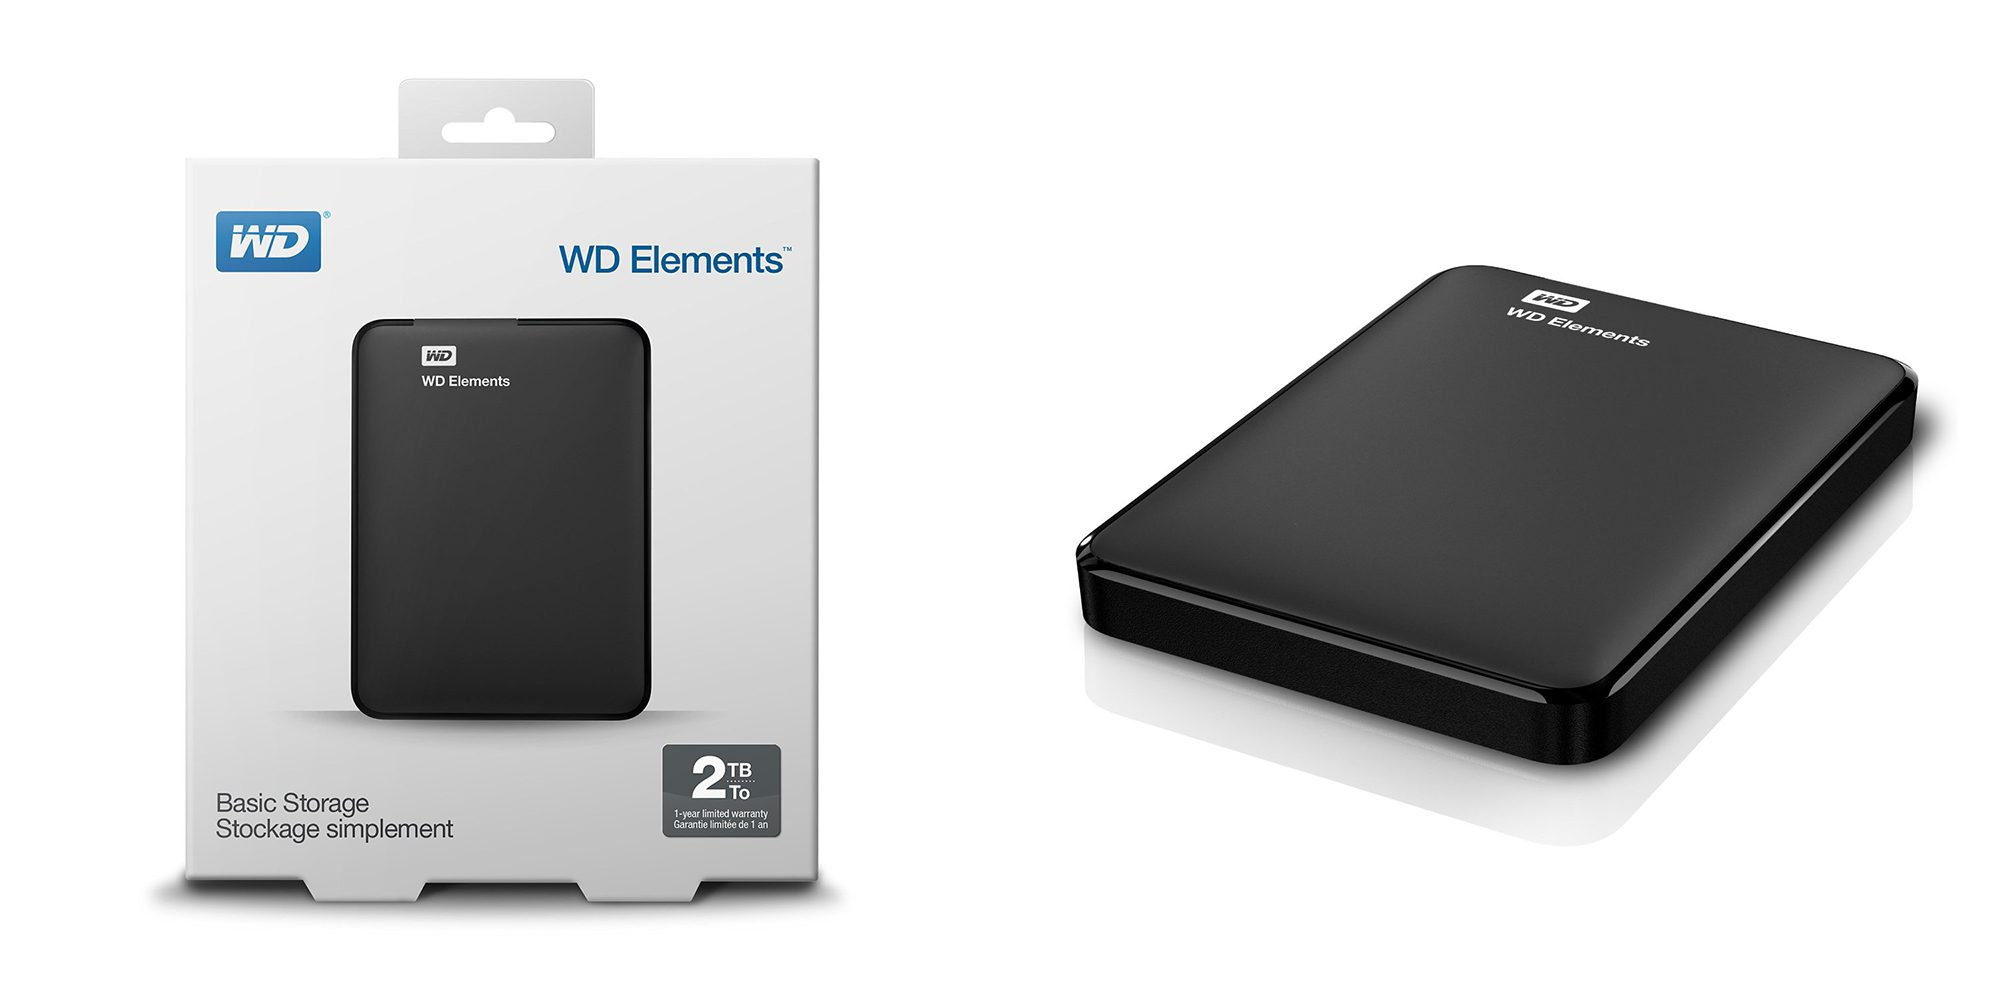 wd-elements-2tb-hdd